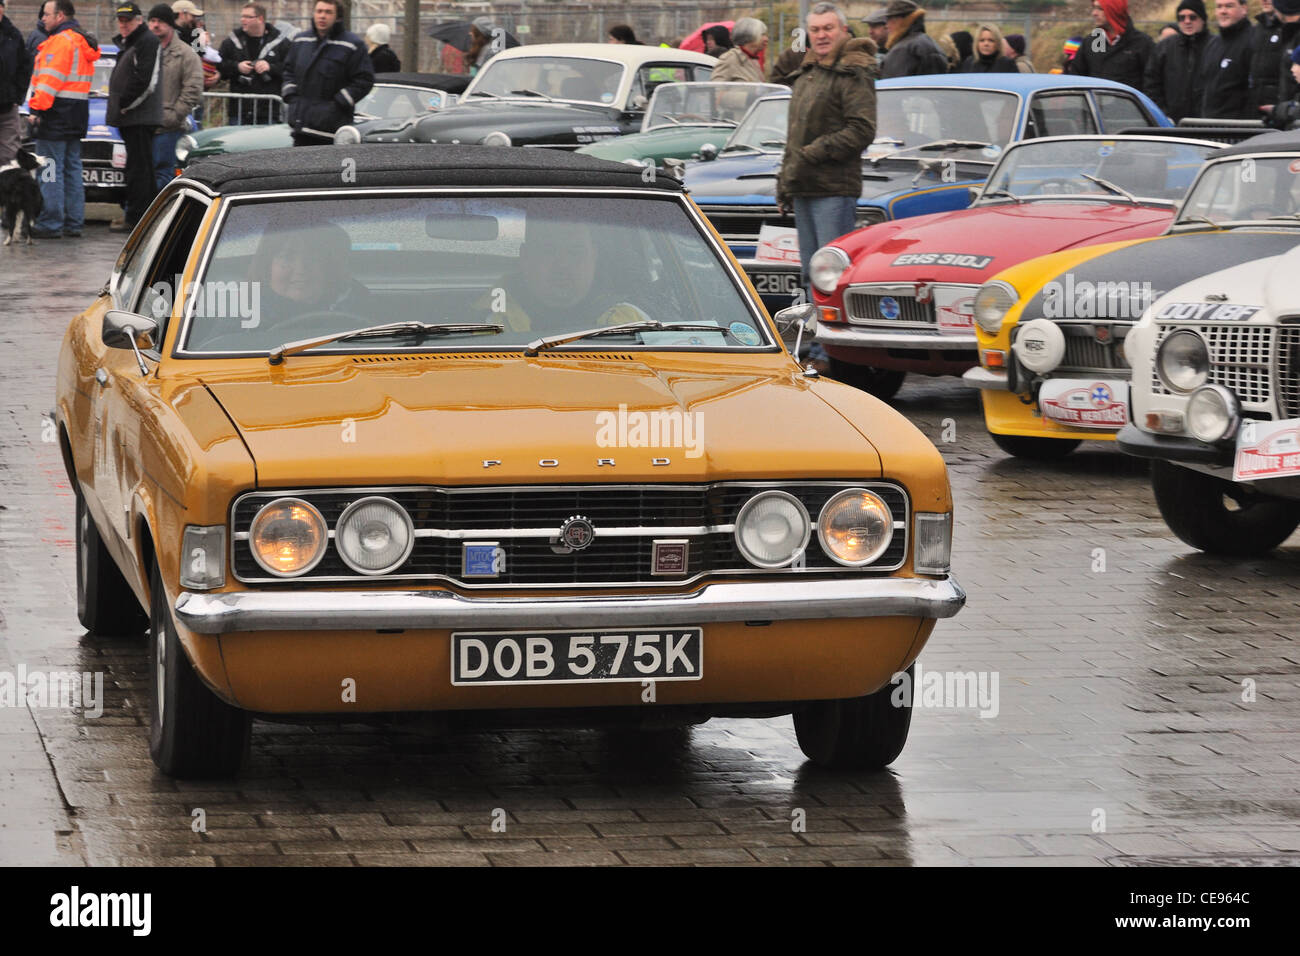 Monte Carlo rallye competitor in a Mk 3 Ford Cortina on display at Clydebank, Glasgow, Scotland, UK - Stock Image